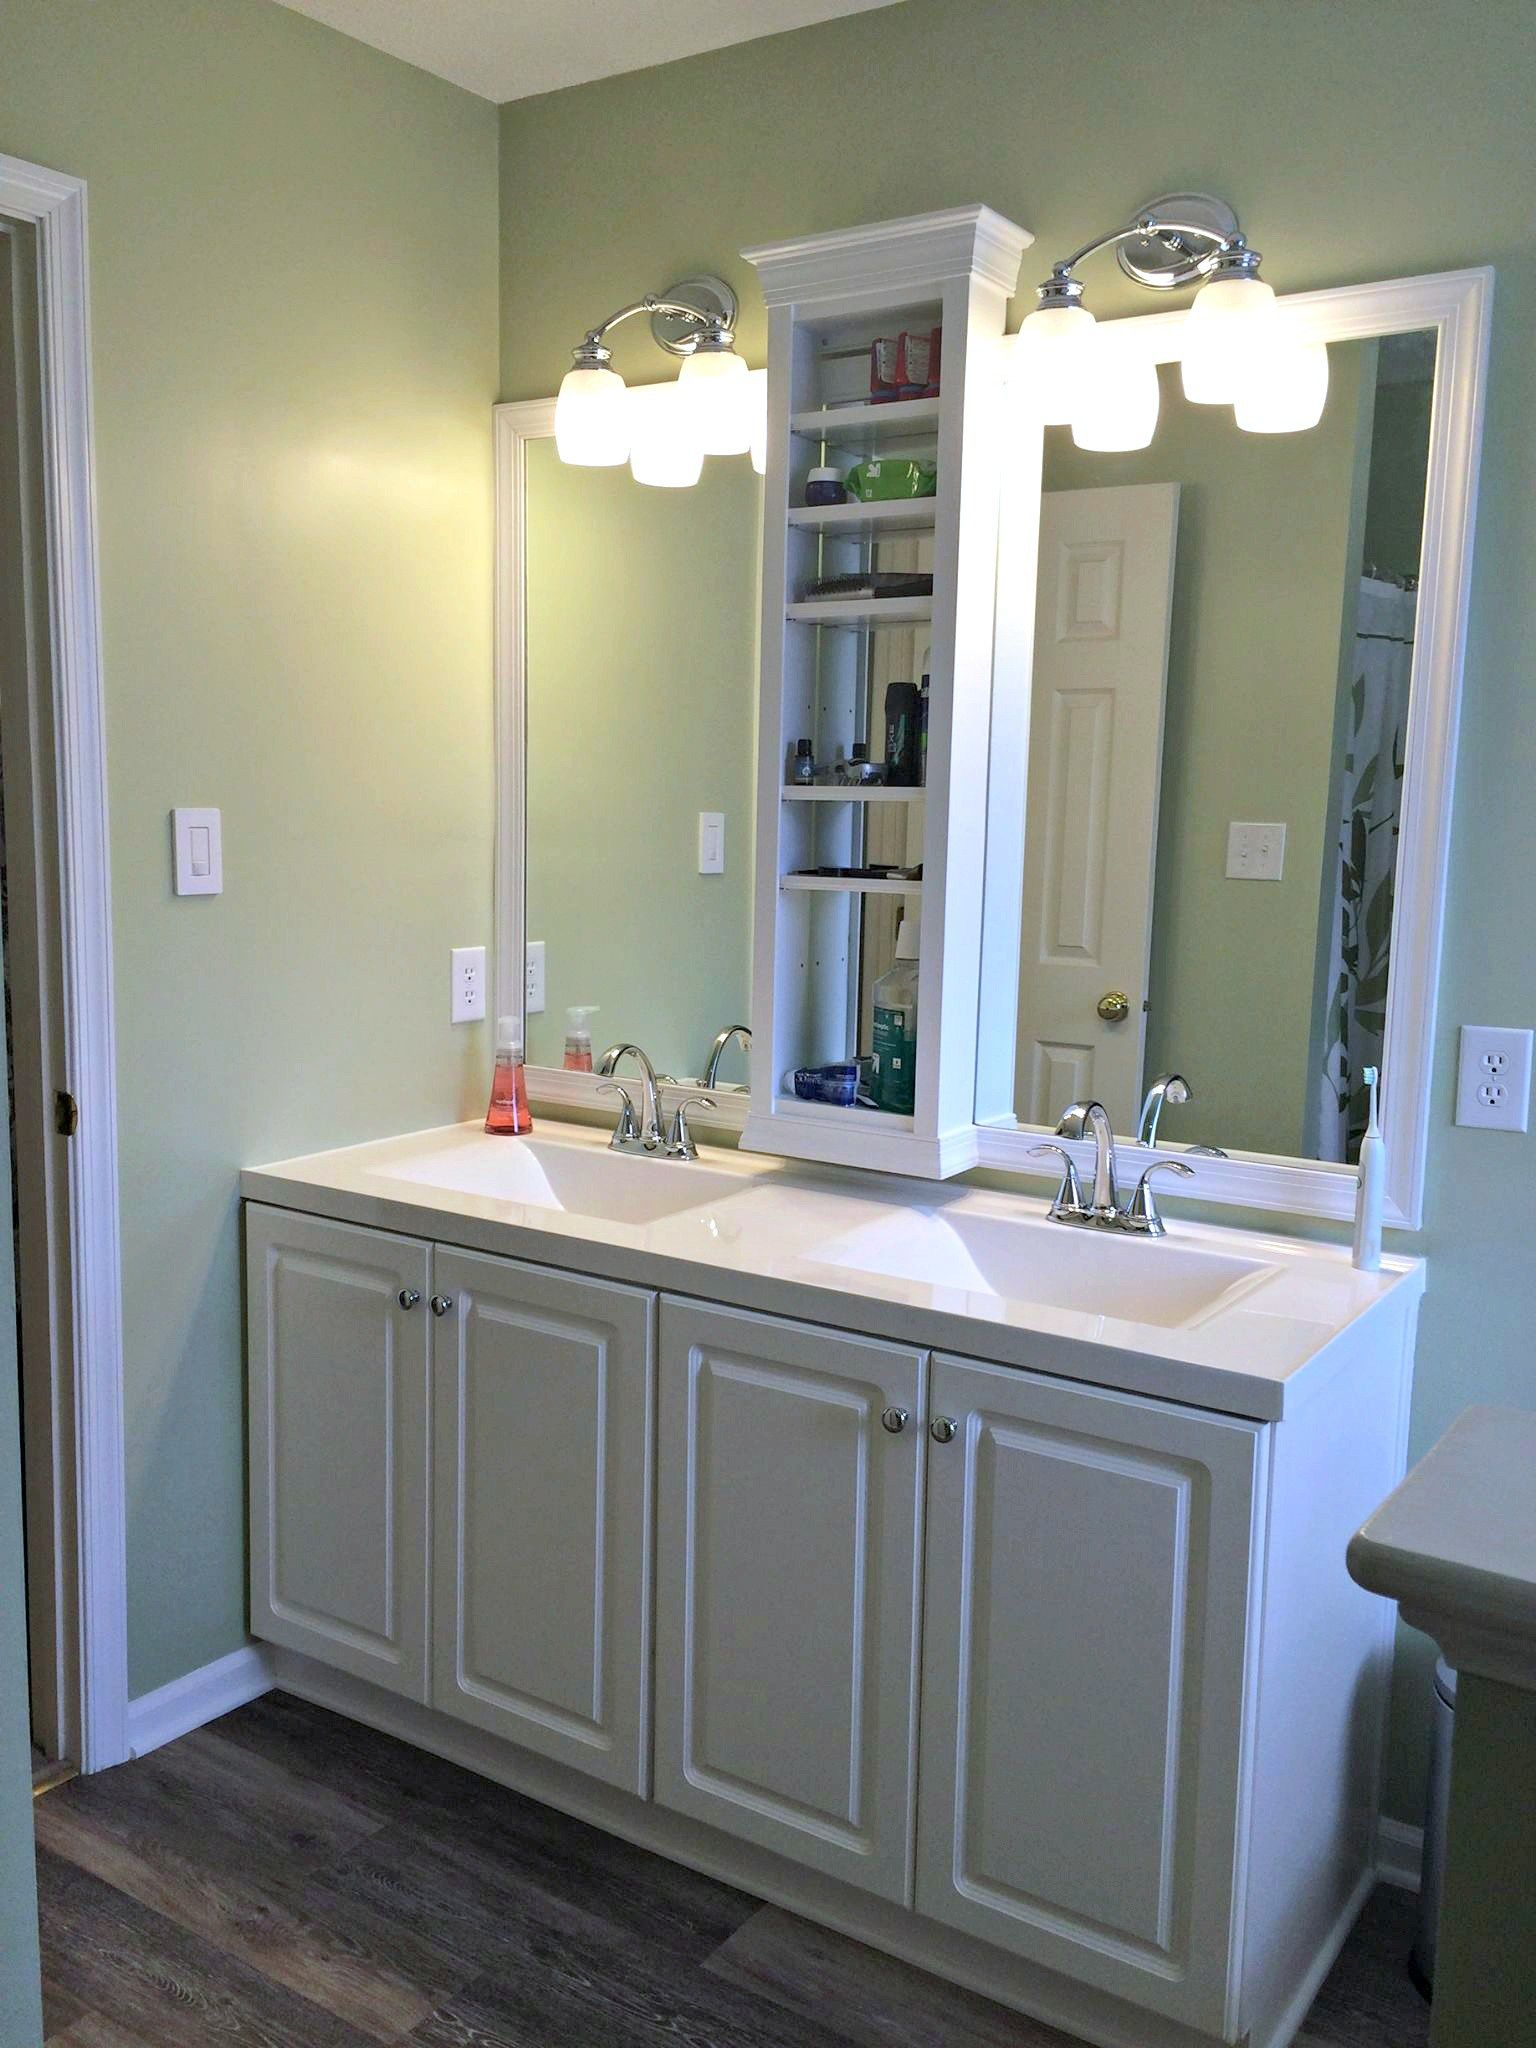 Master Bathroom Vanity Sink Mirror Update Built In Shelves Framed Mirror With Molding Tri Bathroom Mirrors Diy Master Bathroom Vanity Double Vanity Bathroom